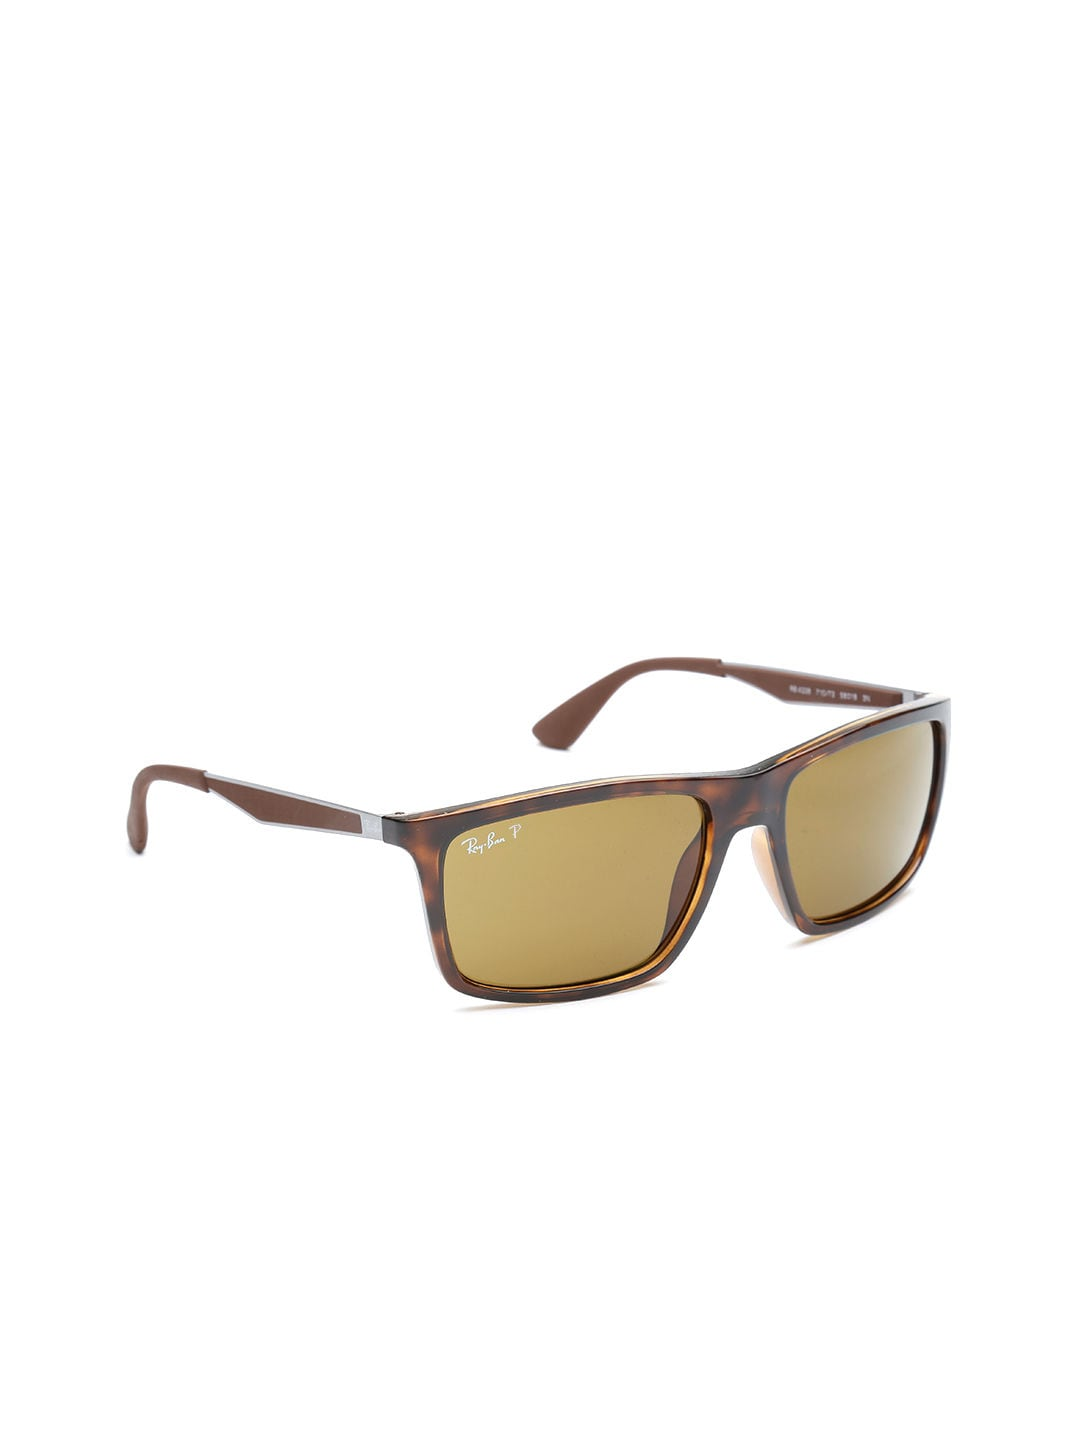 b299d23a69 Ray Ban - Buy Ray Ban Sunglasses   Frames Online In India